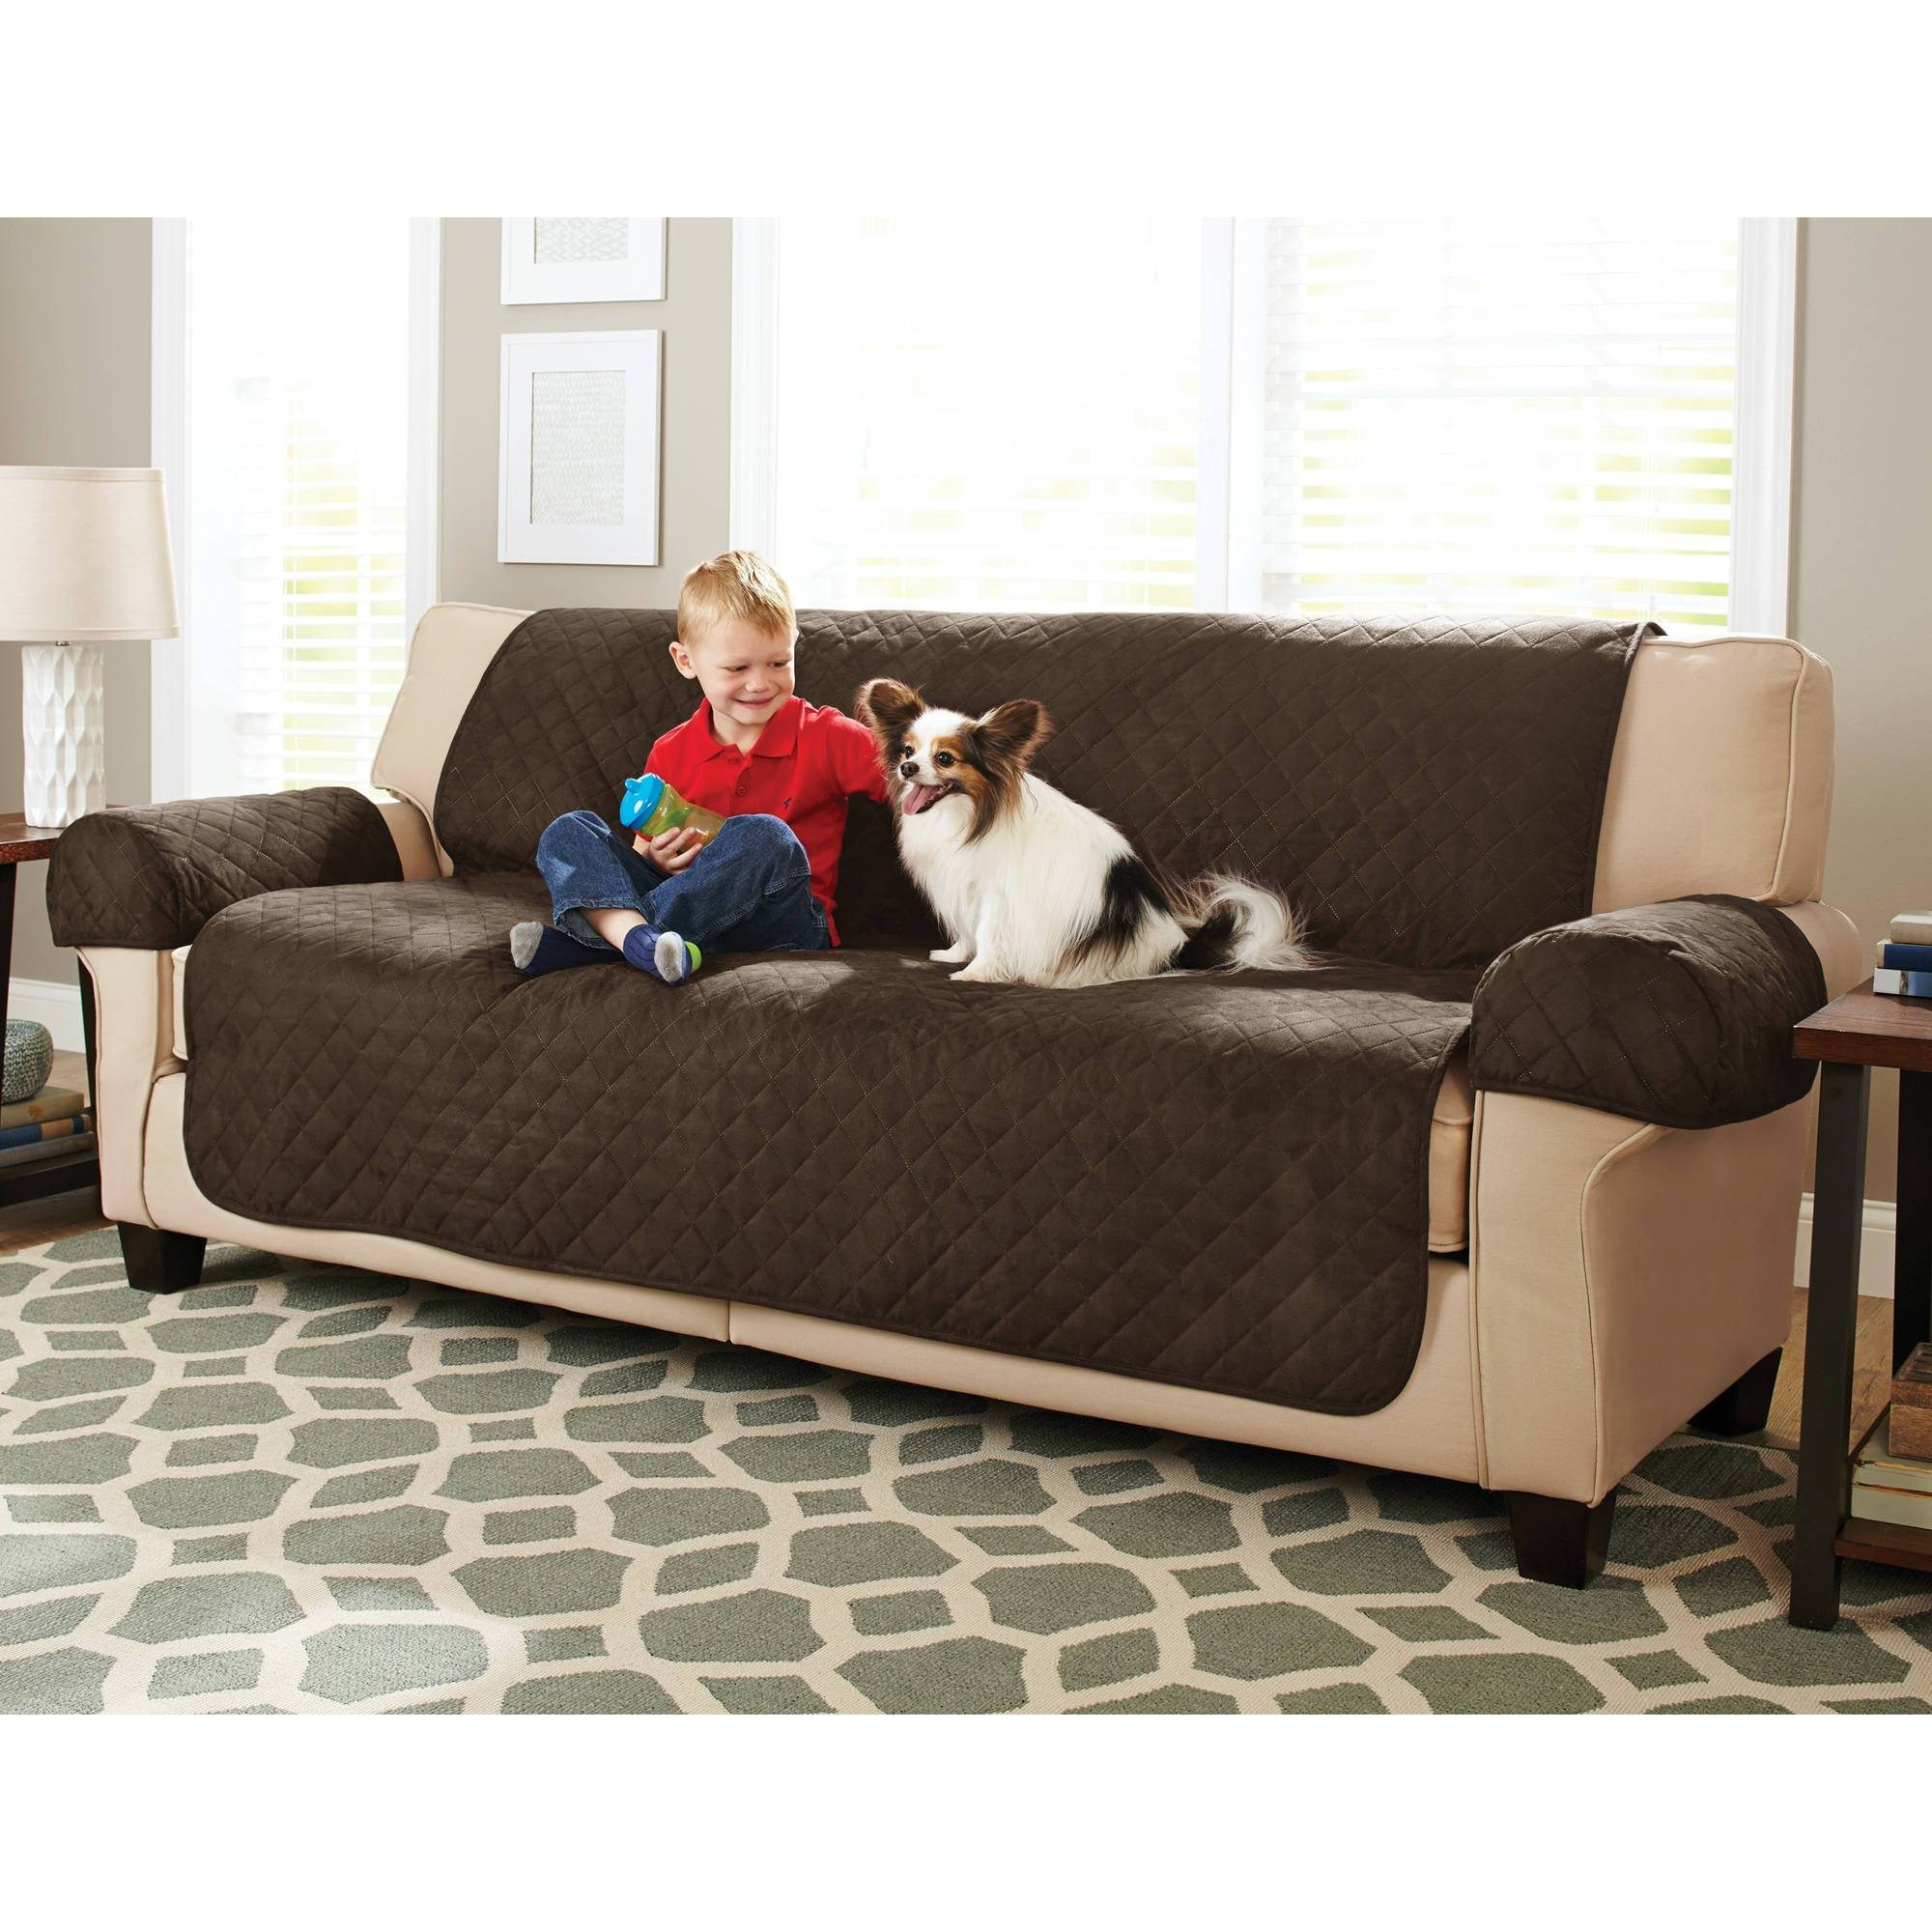 Better Homes And Gardens Waterproof Non-Slip Faux Suede Pet pertaining to Sofas With Black Cover (Image 4 of 15)